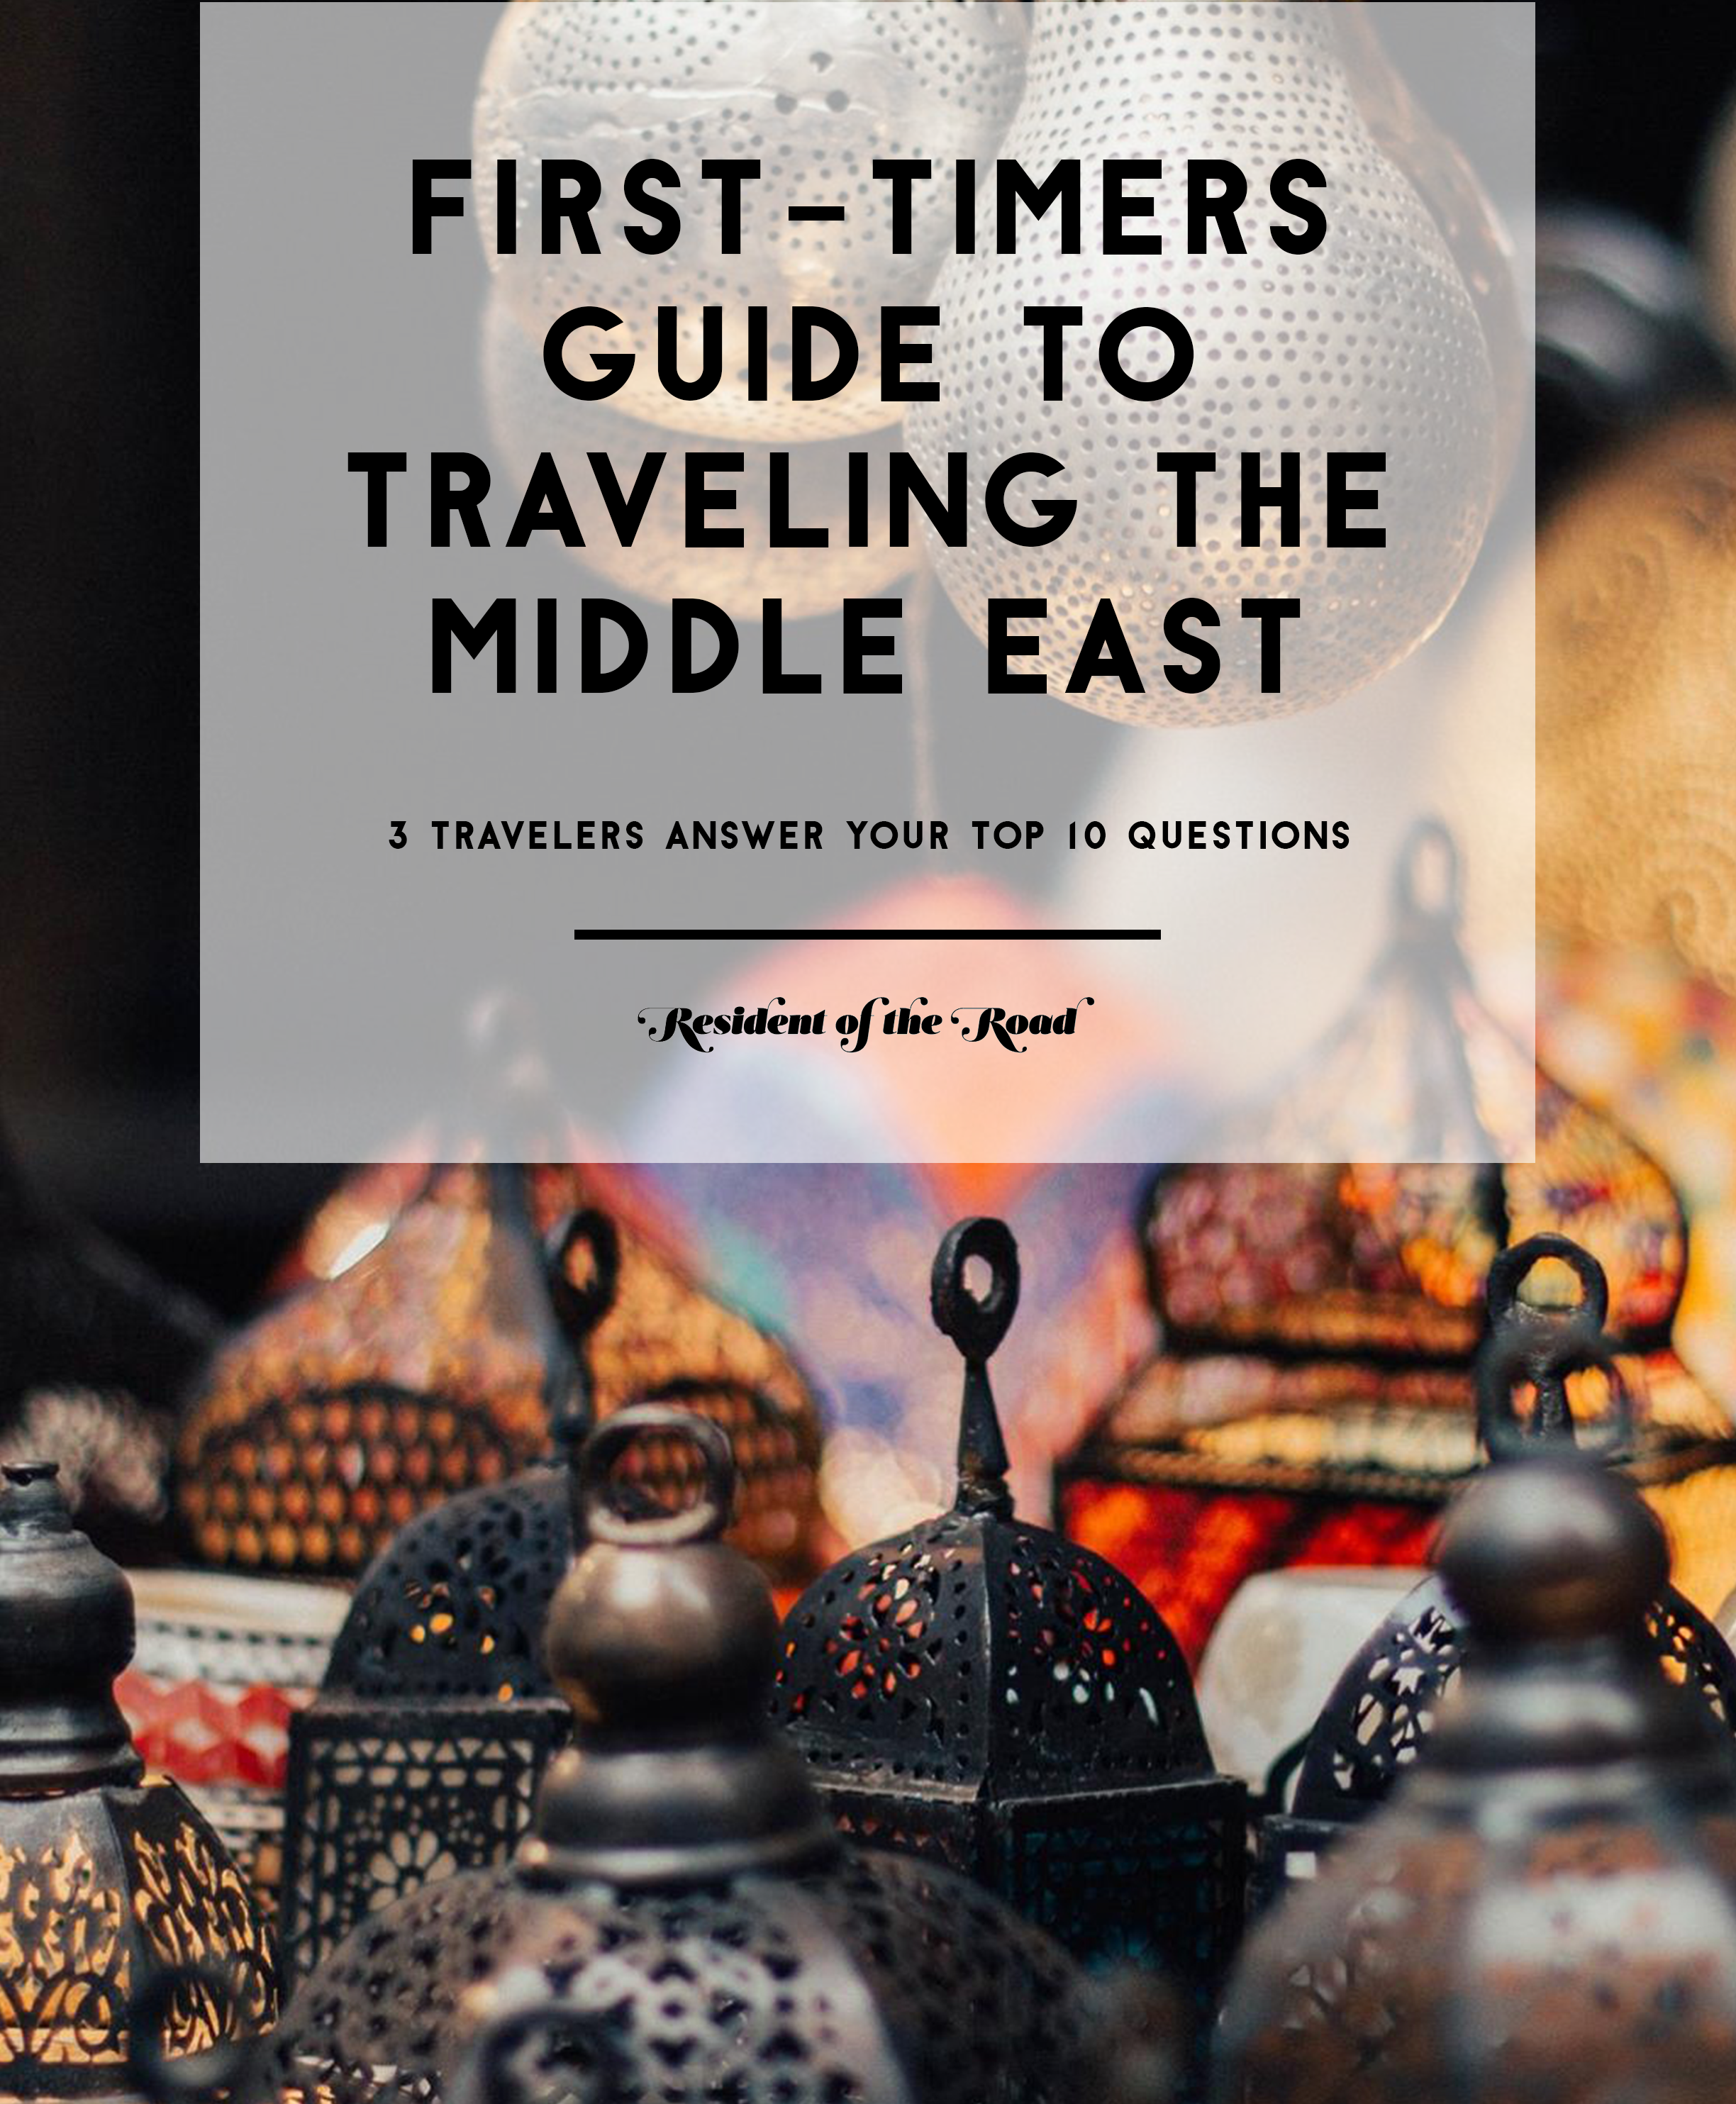 The First-Timers Guide to Traveling the Middle East